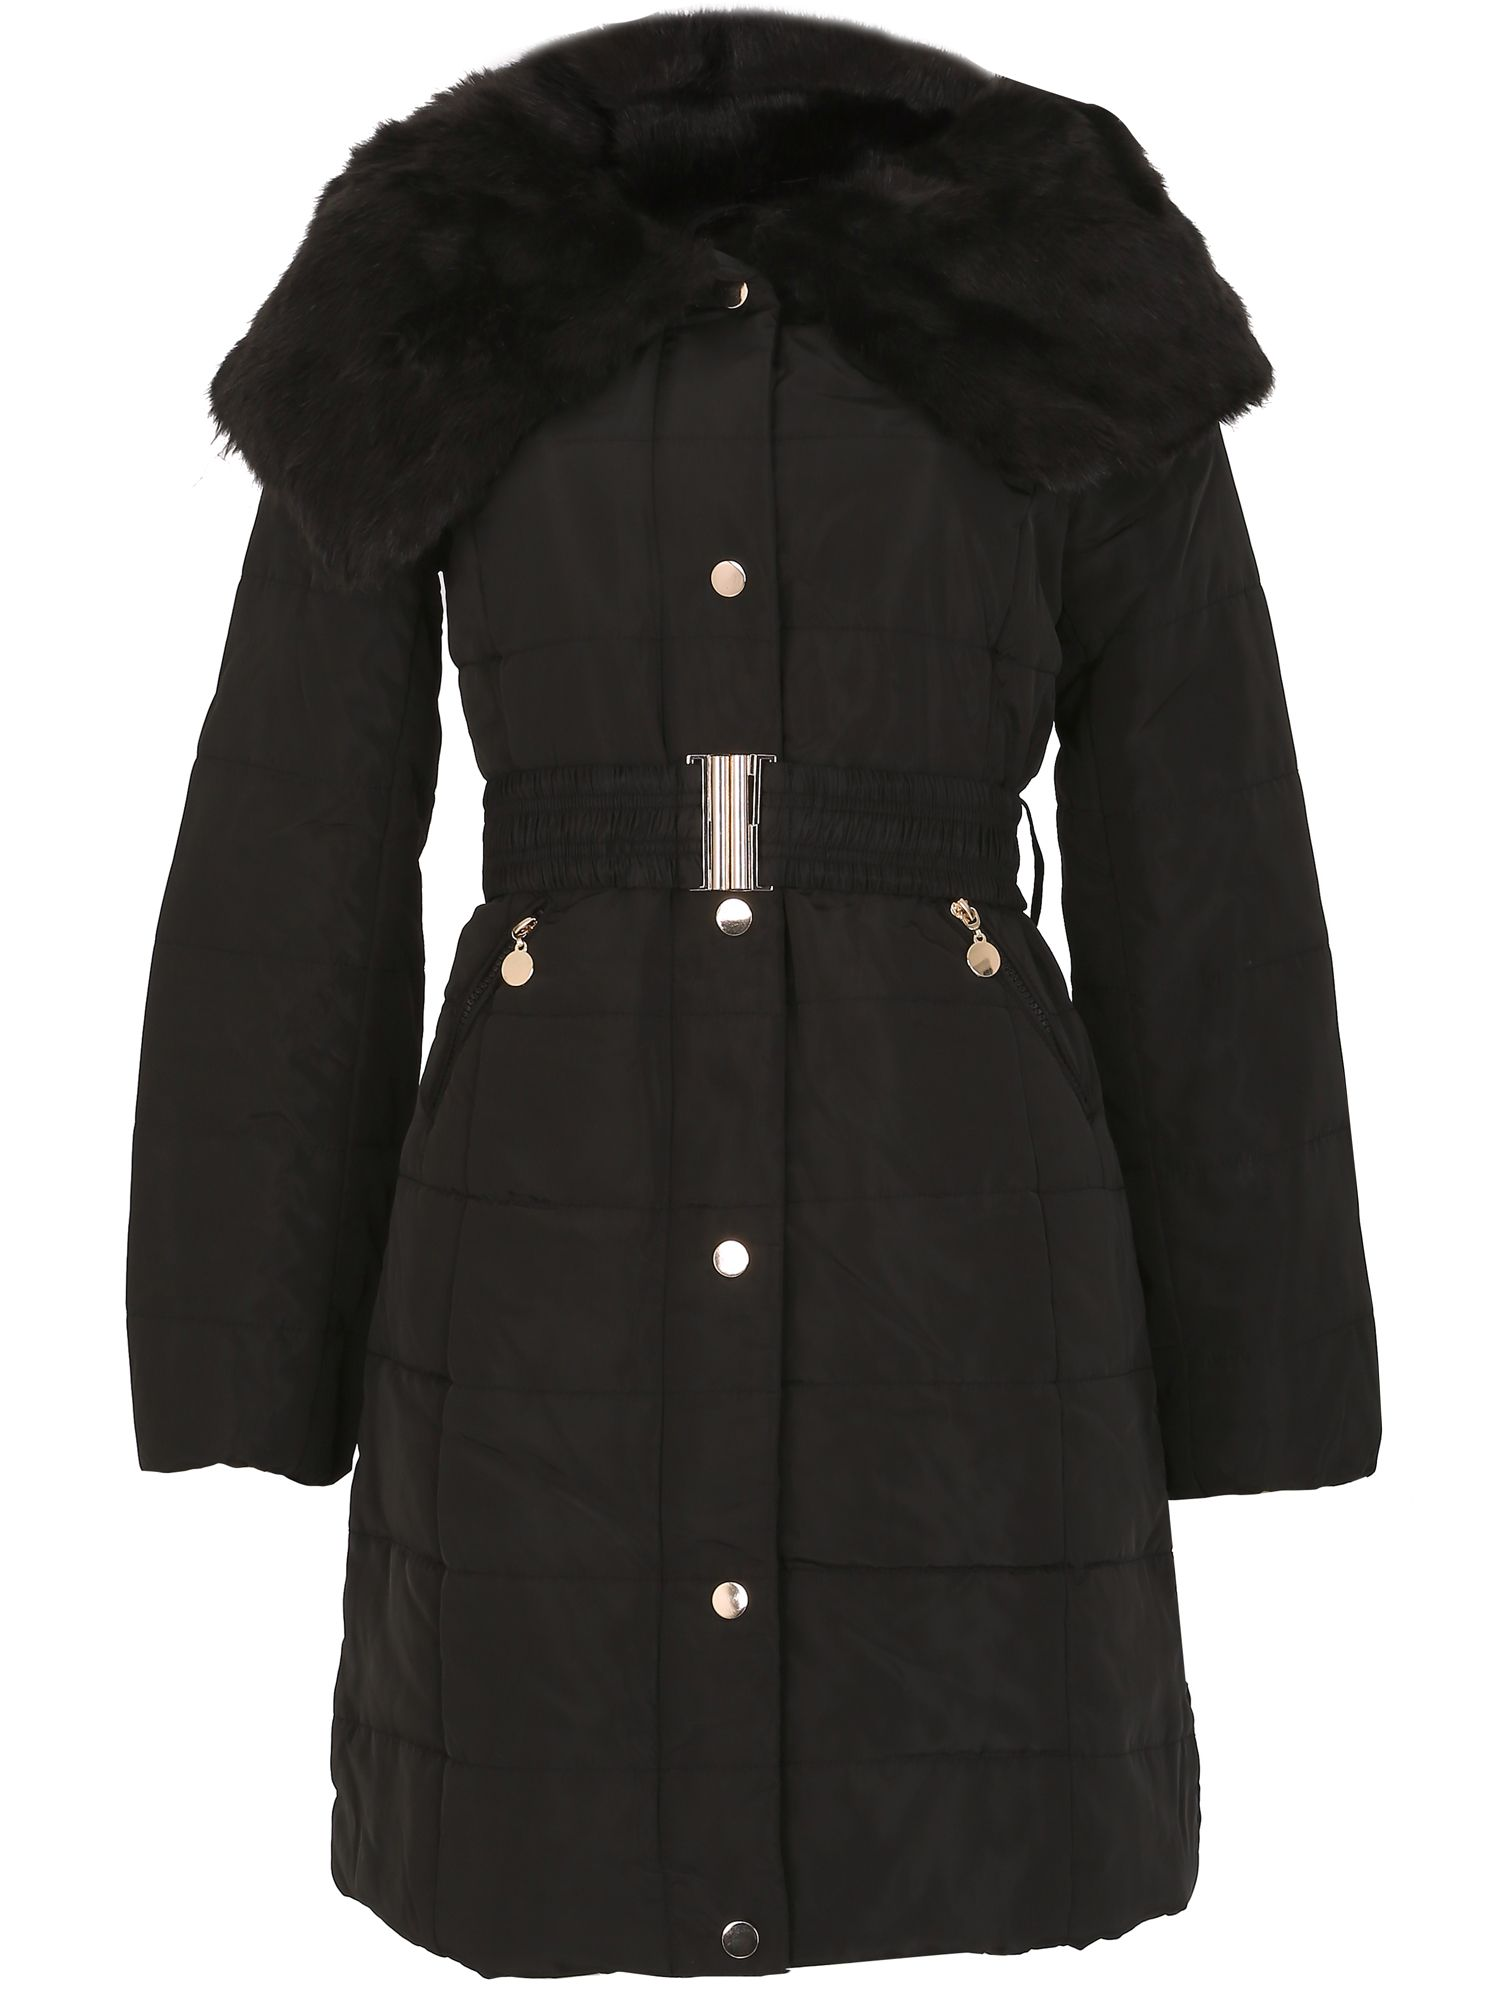 David Barry Shawl Faux Fur Collar Padded Coat, Black